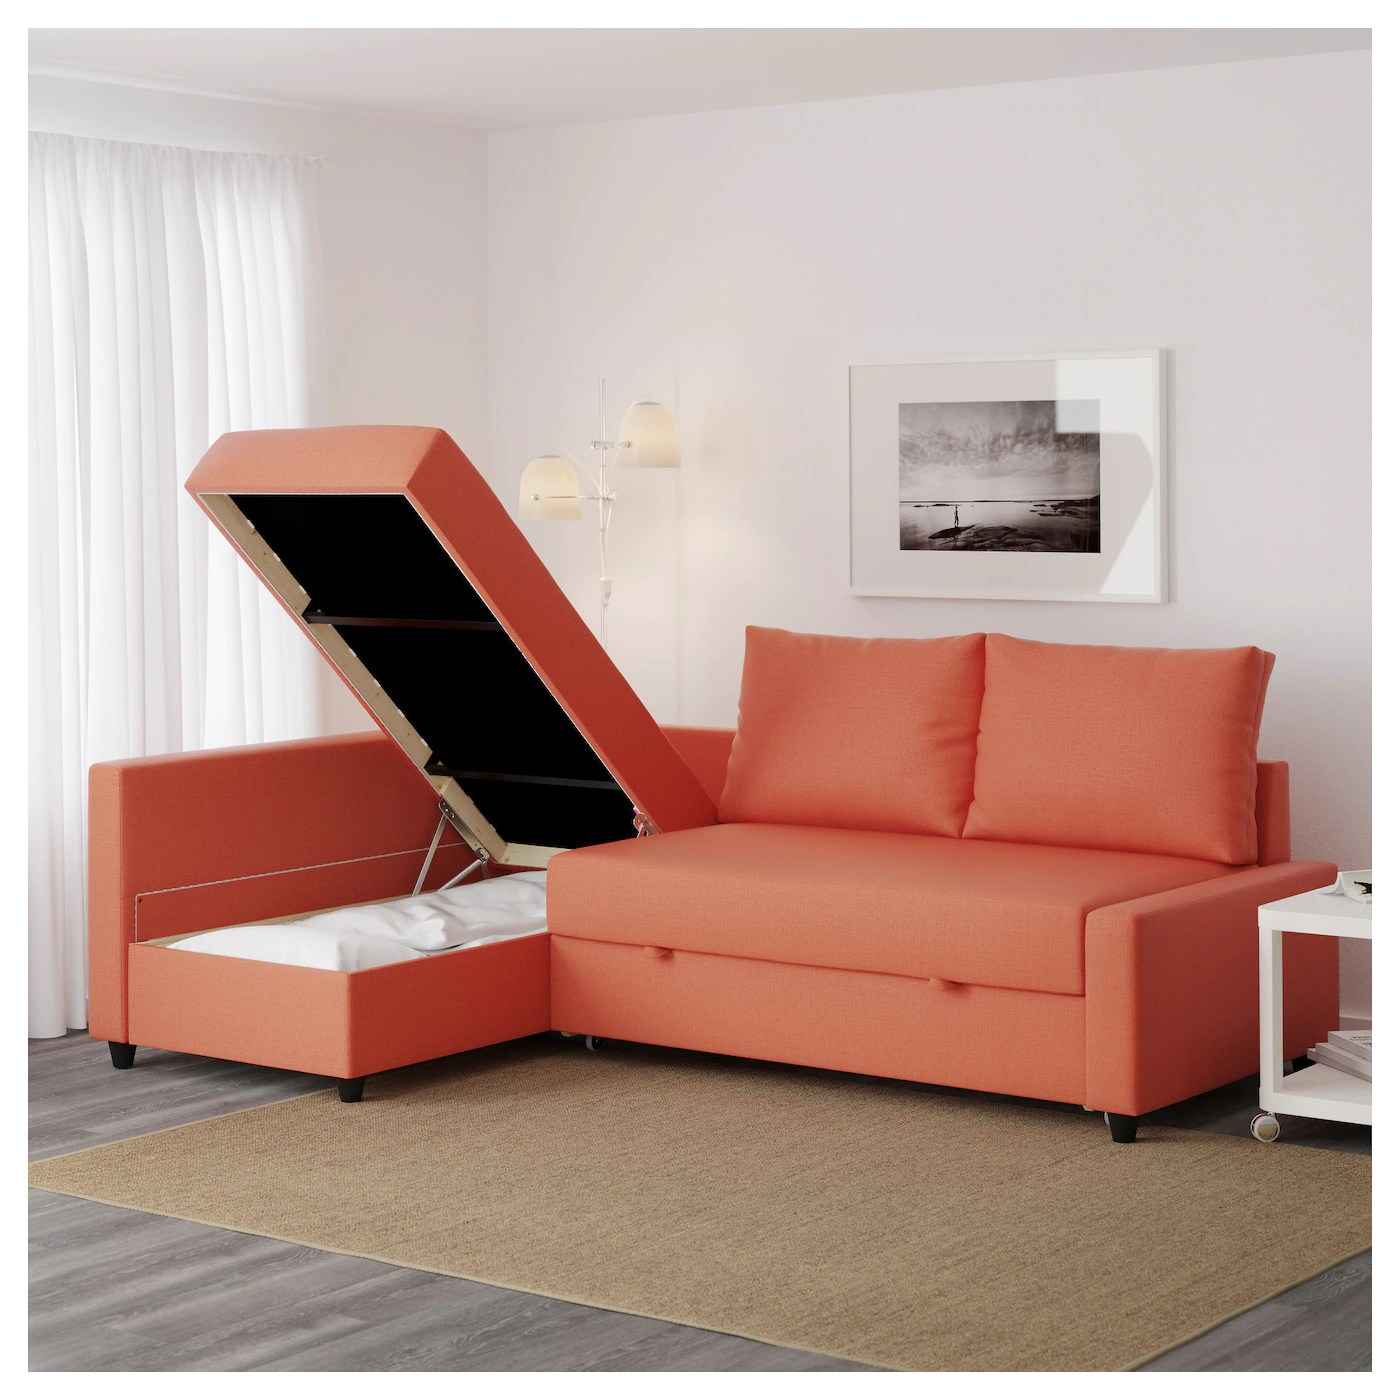 Bettsofa Ikea Friheten Friheten Corner Sofa Bed With Storage Skiftebo Dark Orange